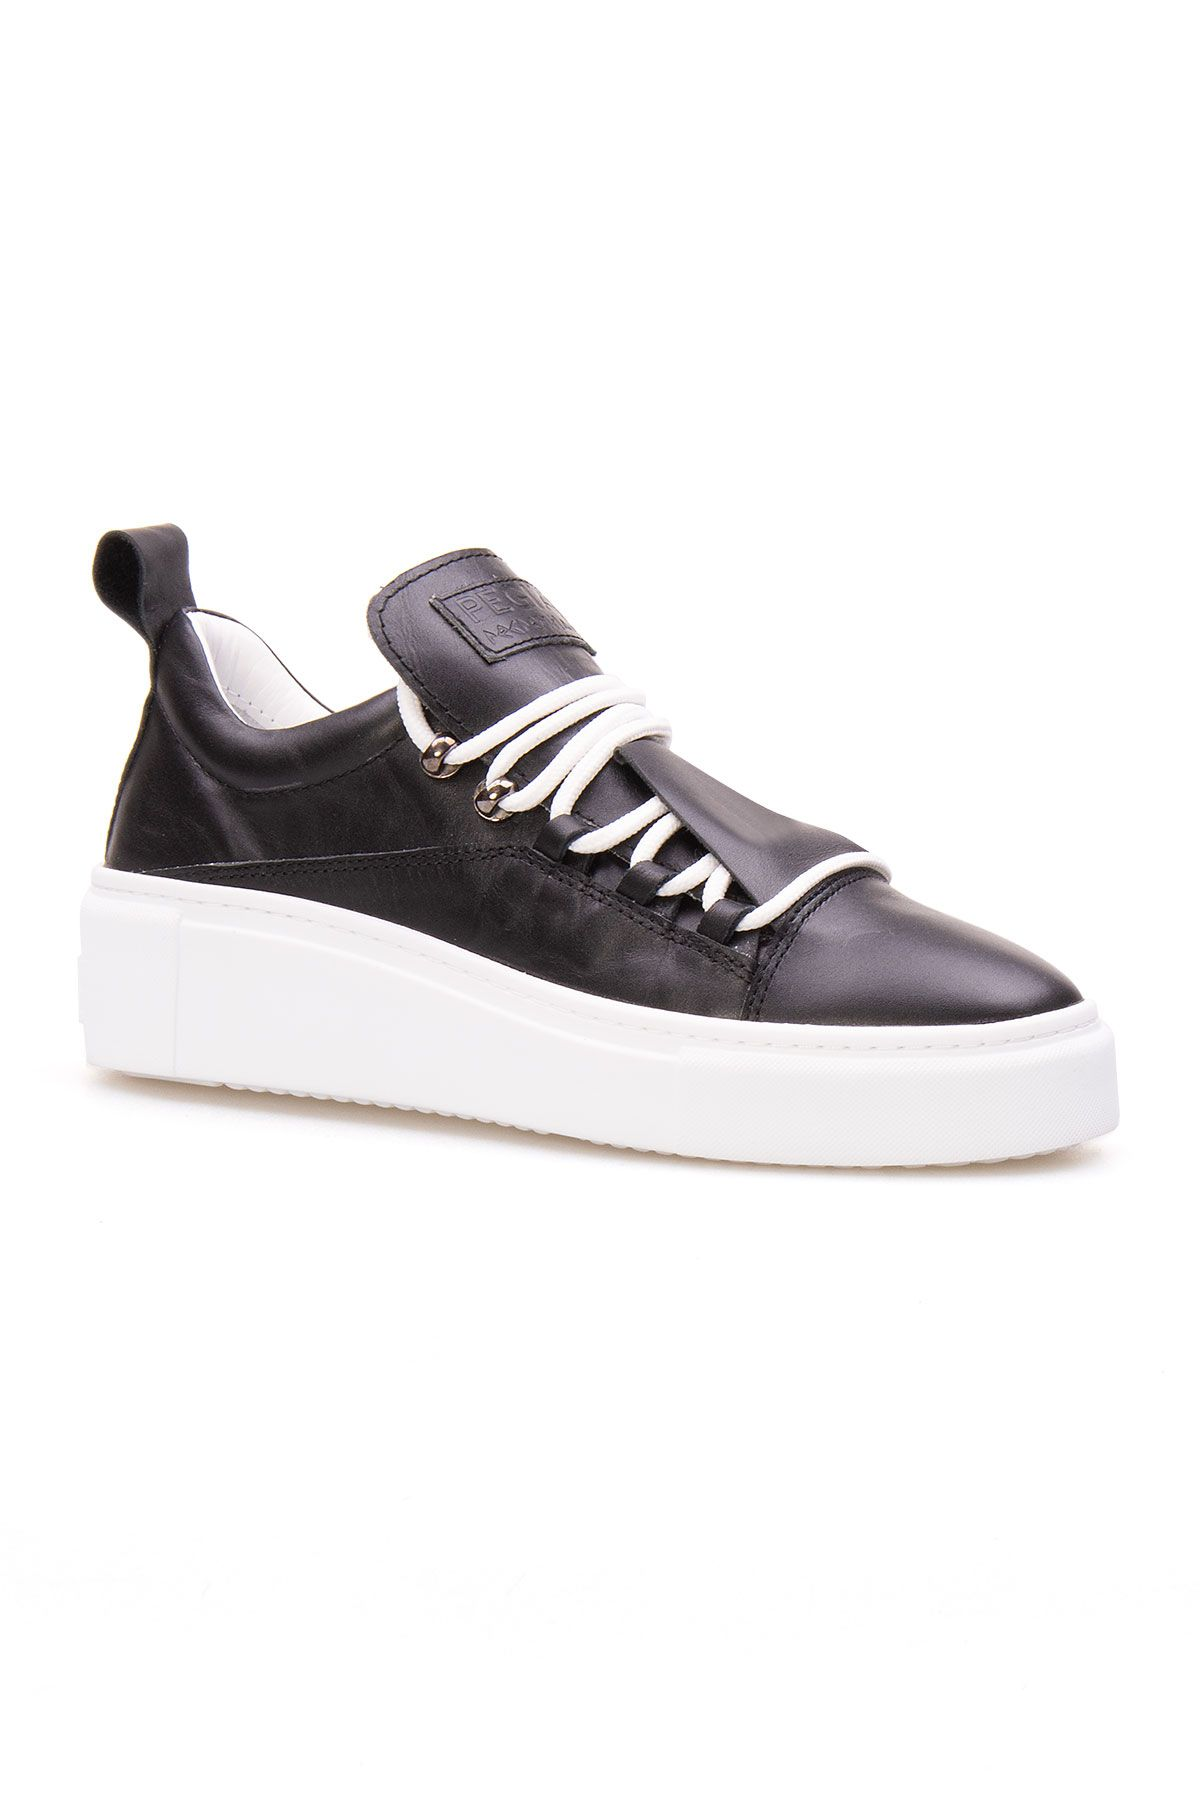 Pegia Genuine Leather Women's Sneaker LA1702 Black